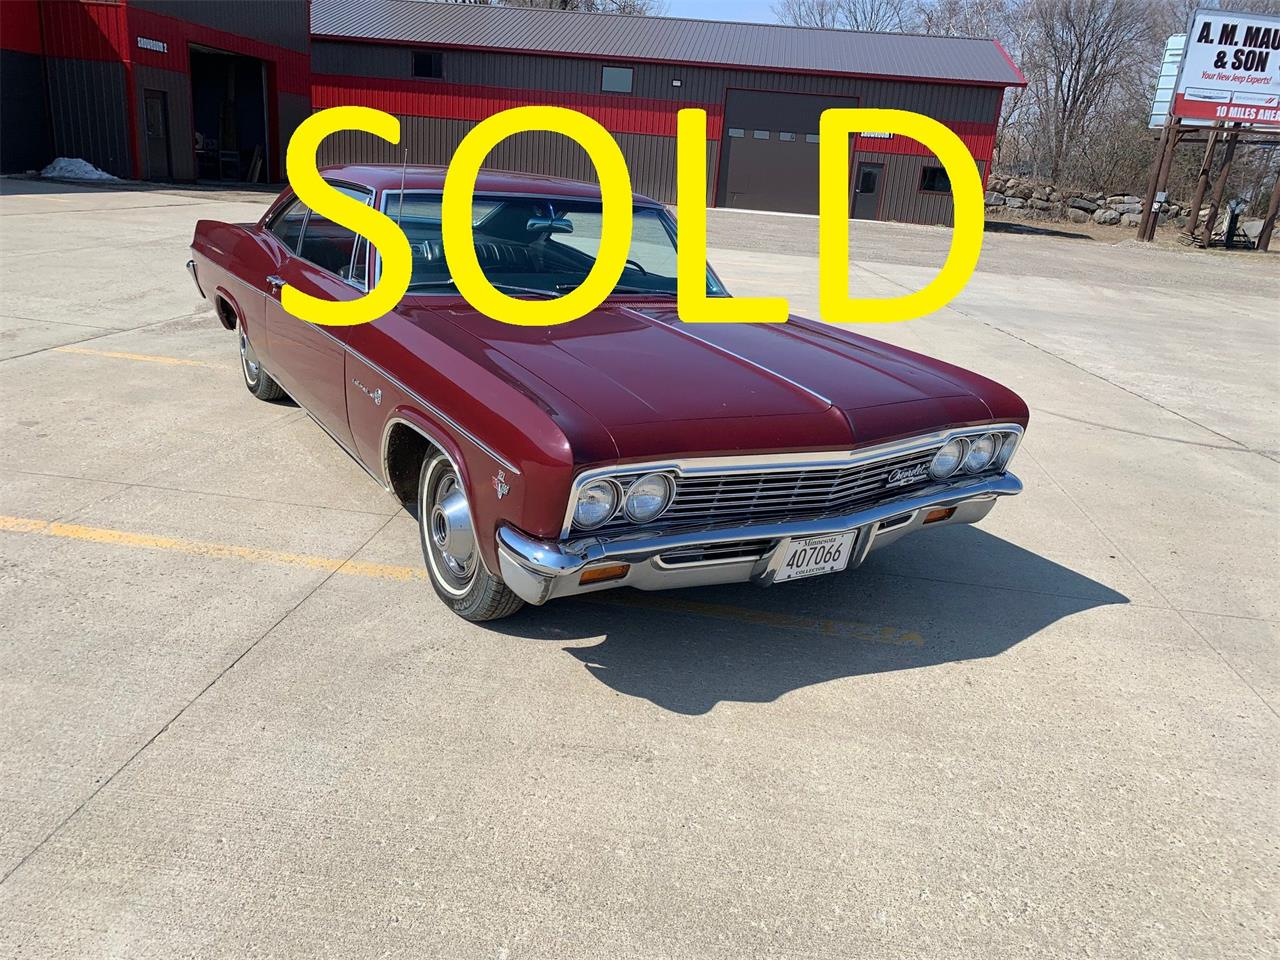 1966 Chevrolet Impala (CC-1336431) for sale in Annandale, Minnesota